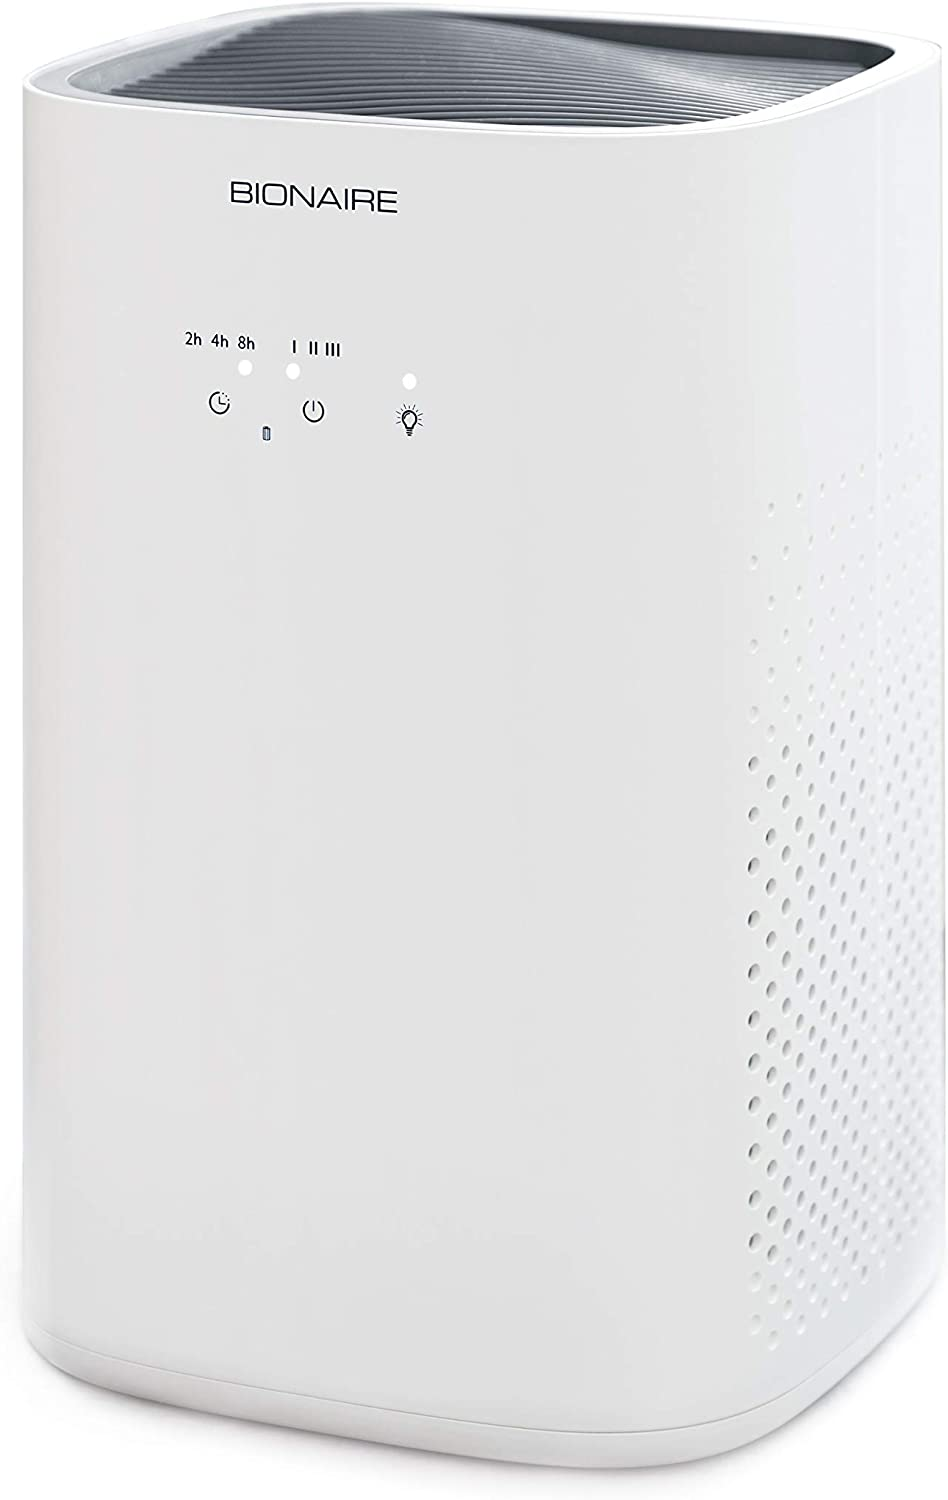 Bionaire True HEPA Air Purifier With 3 Stage Filtration System, Air Cleaner with Quiet Setting, Medium Room Air Purifier for Allergies & Pets, White